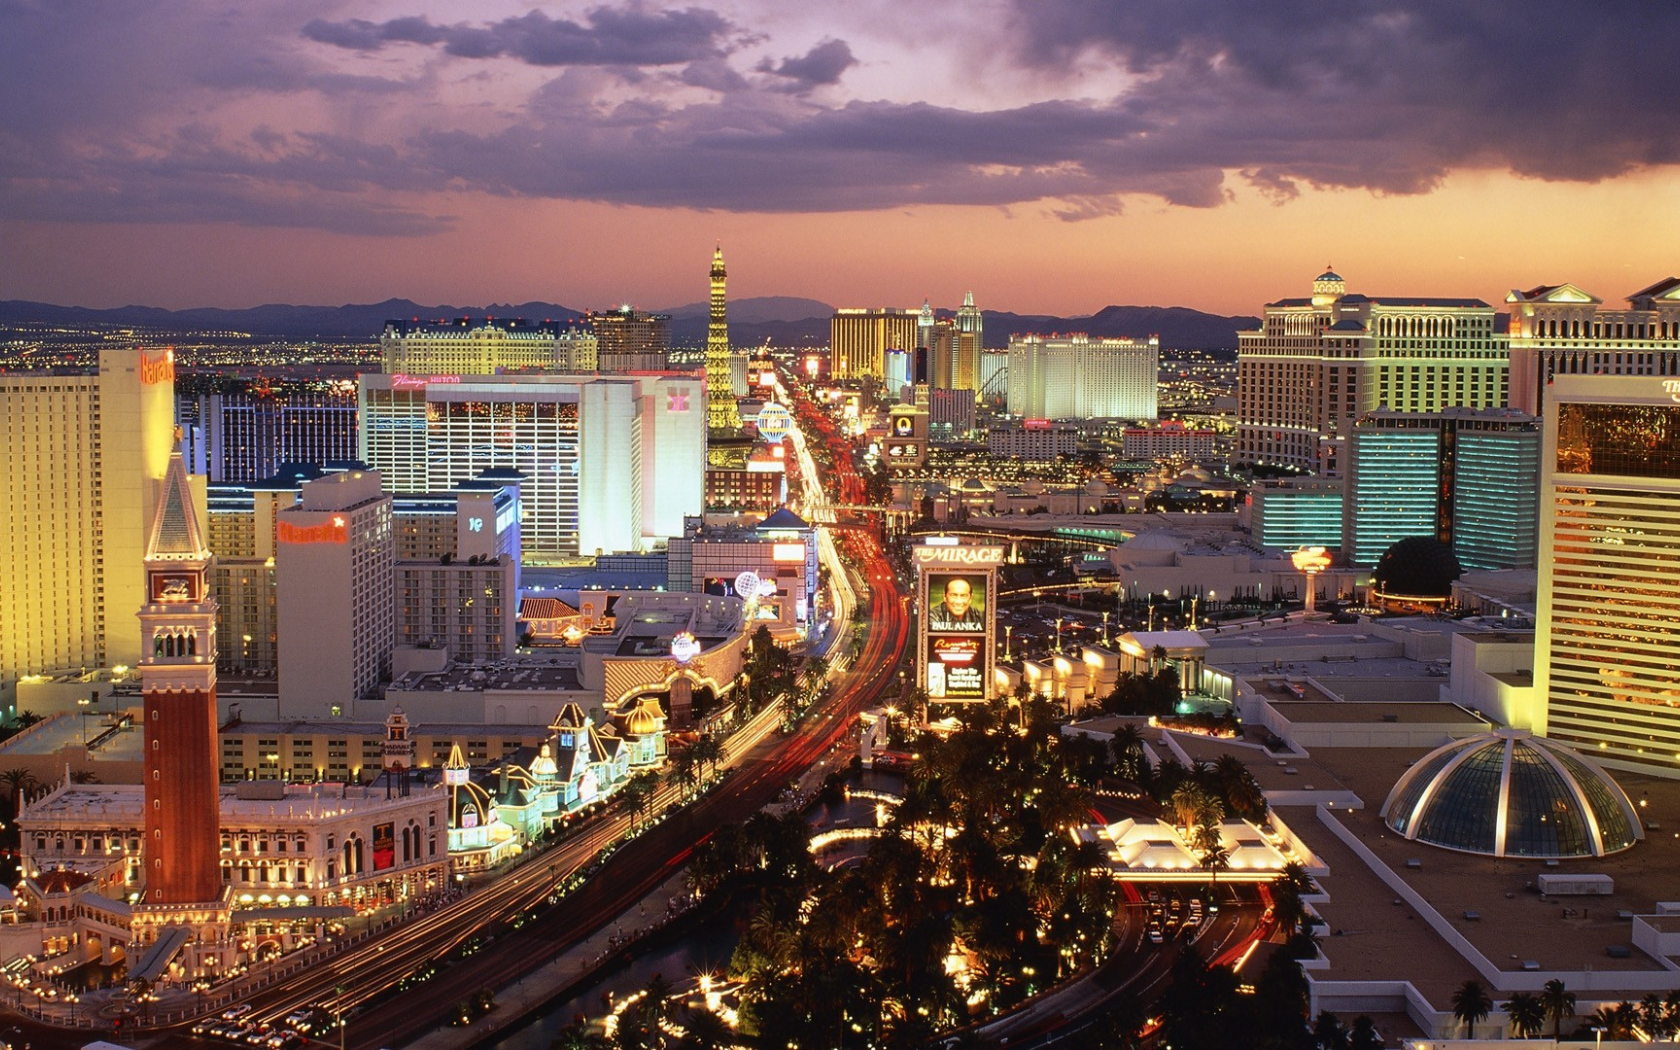 Free Download Las Vegas Wallpaper 1920x1080 Las Vegas Nevada Dusk 1920x1080 For Your Desktop Mobile Tablet Explore 47 Las Vegas Wallpaper Desktop Hd Las Vegas Wallpaper Wallpaper Elegance